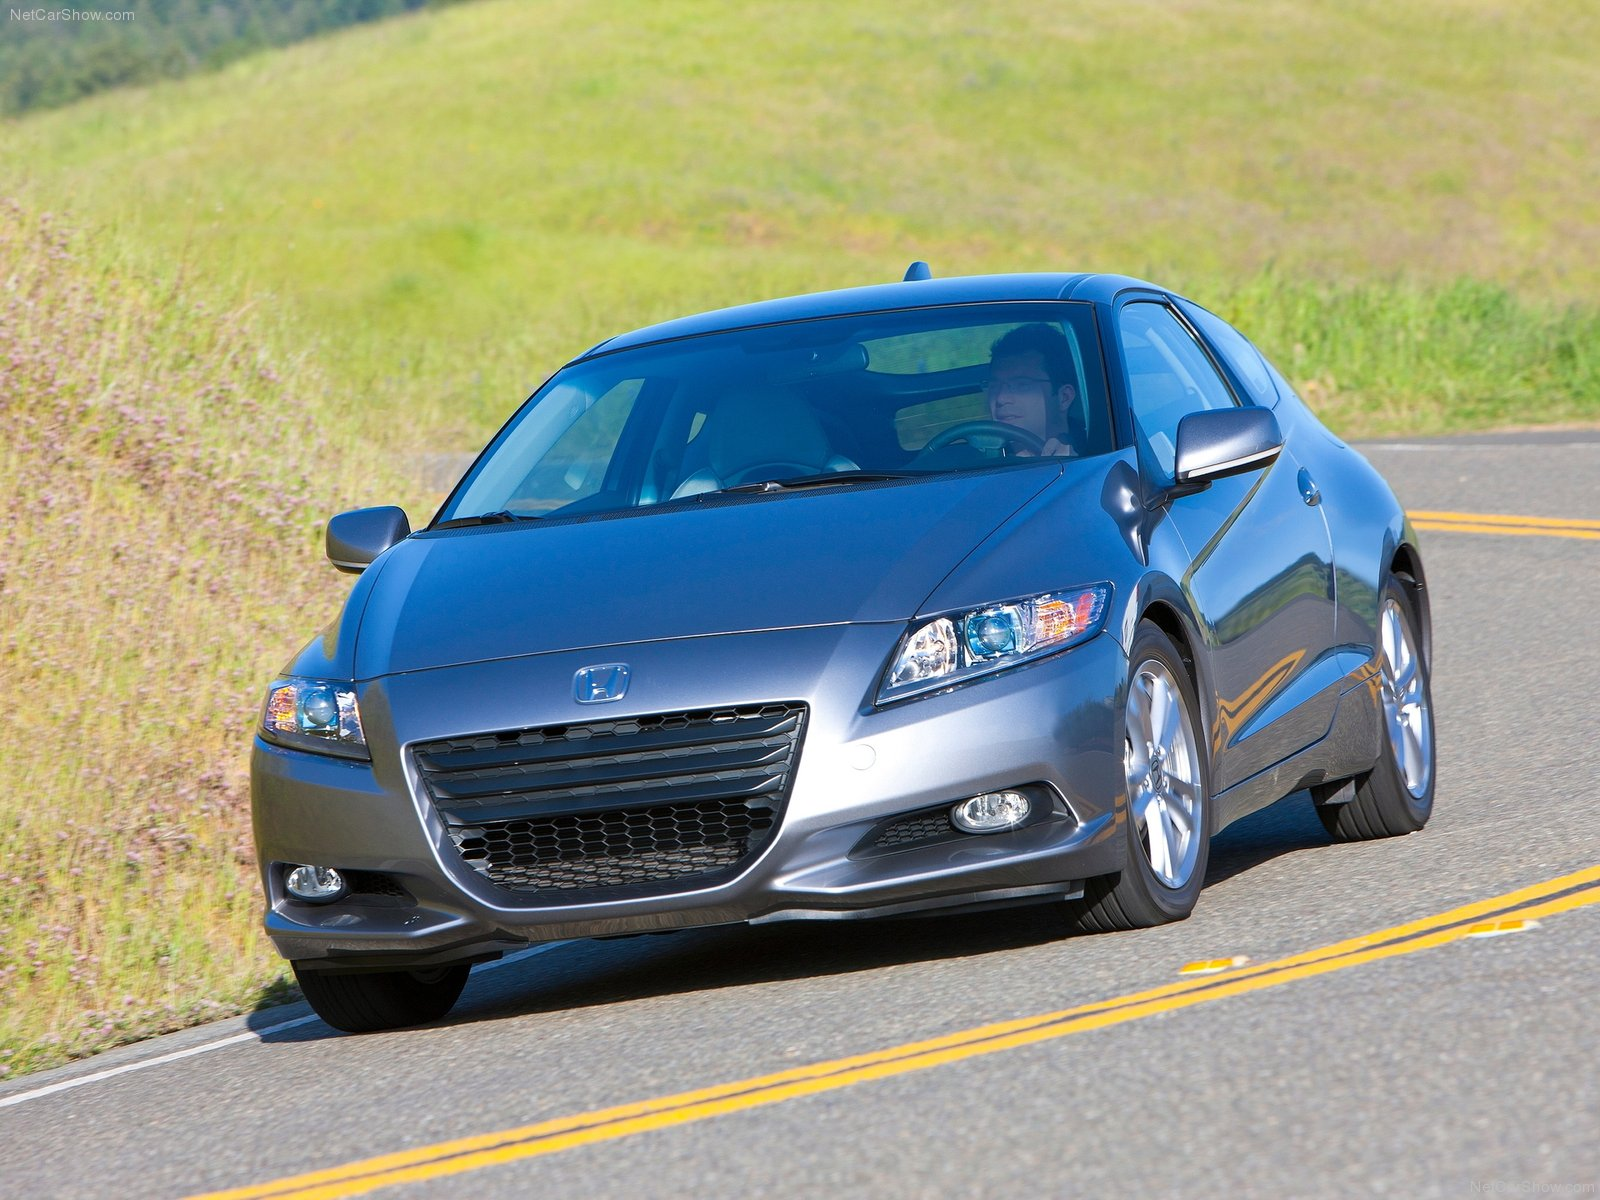 Honda CR-Z photo #85159